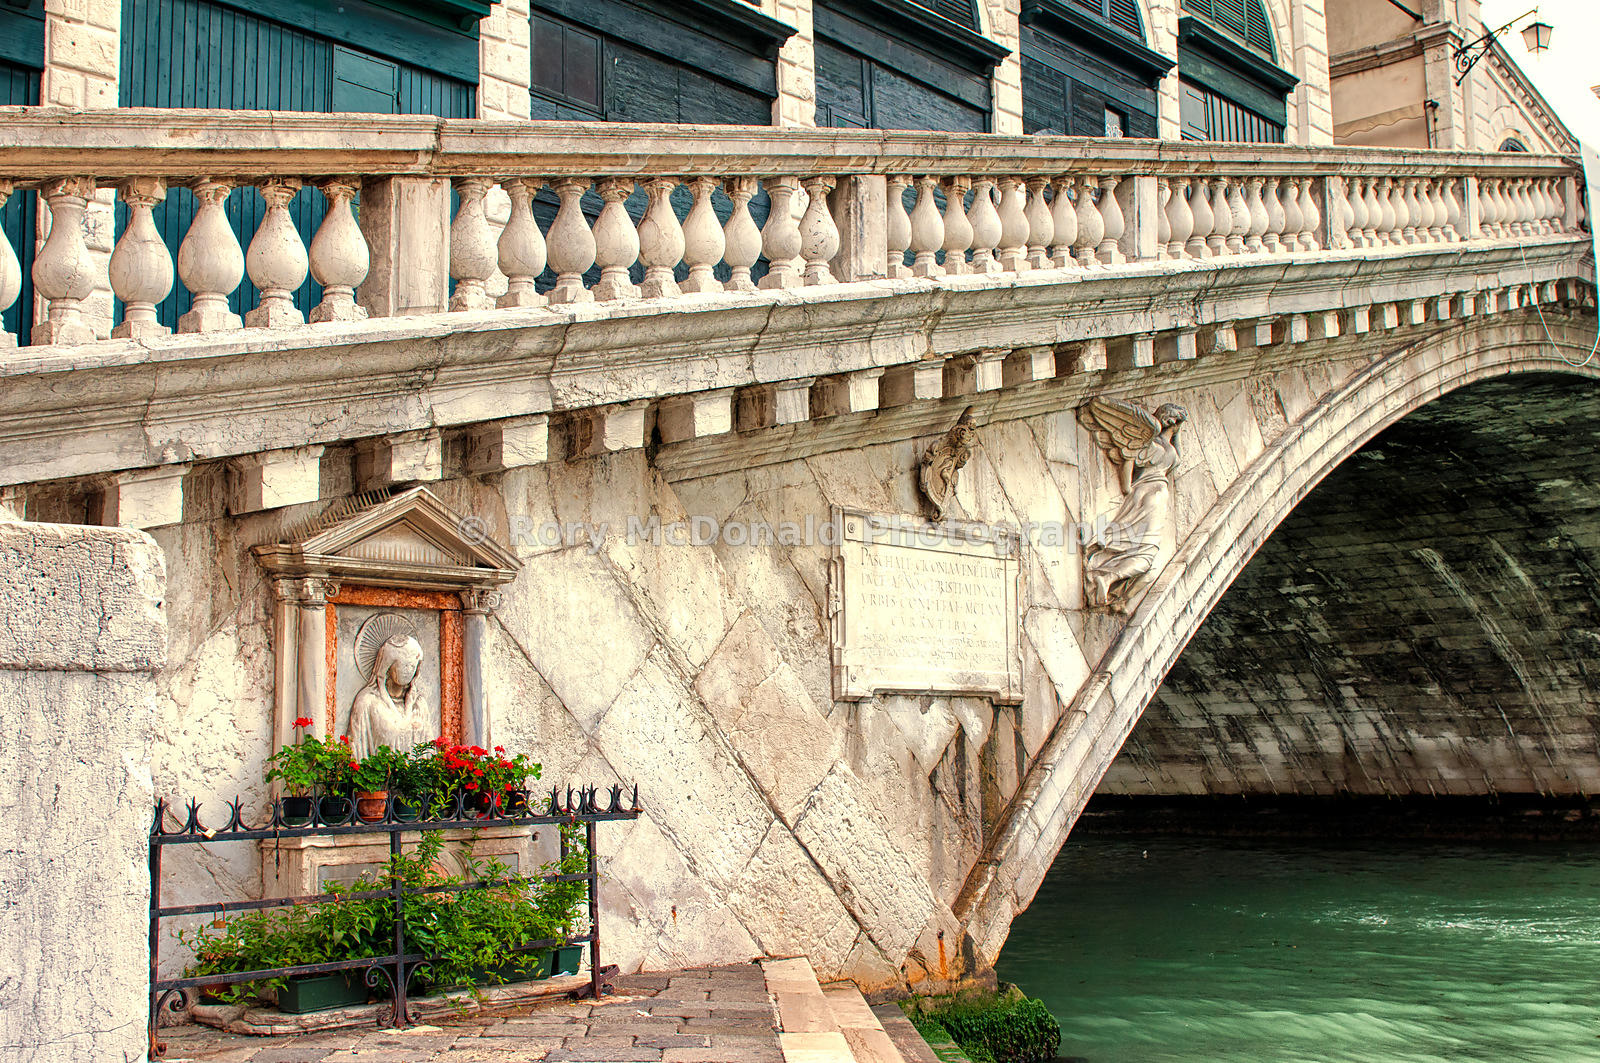 Foot of the Rialto Bridge, Venice